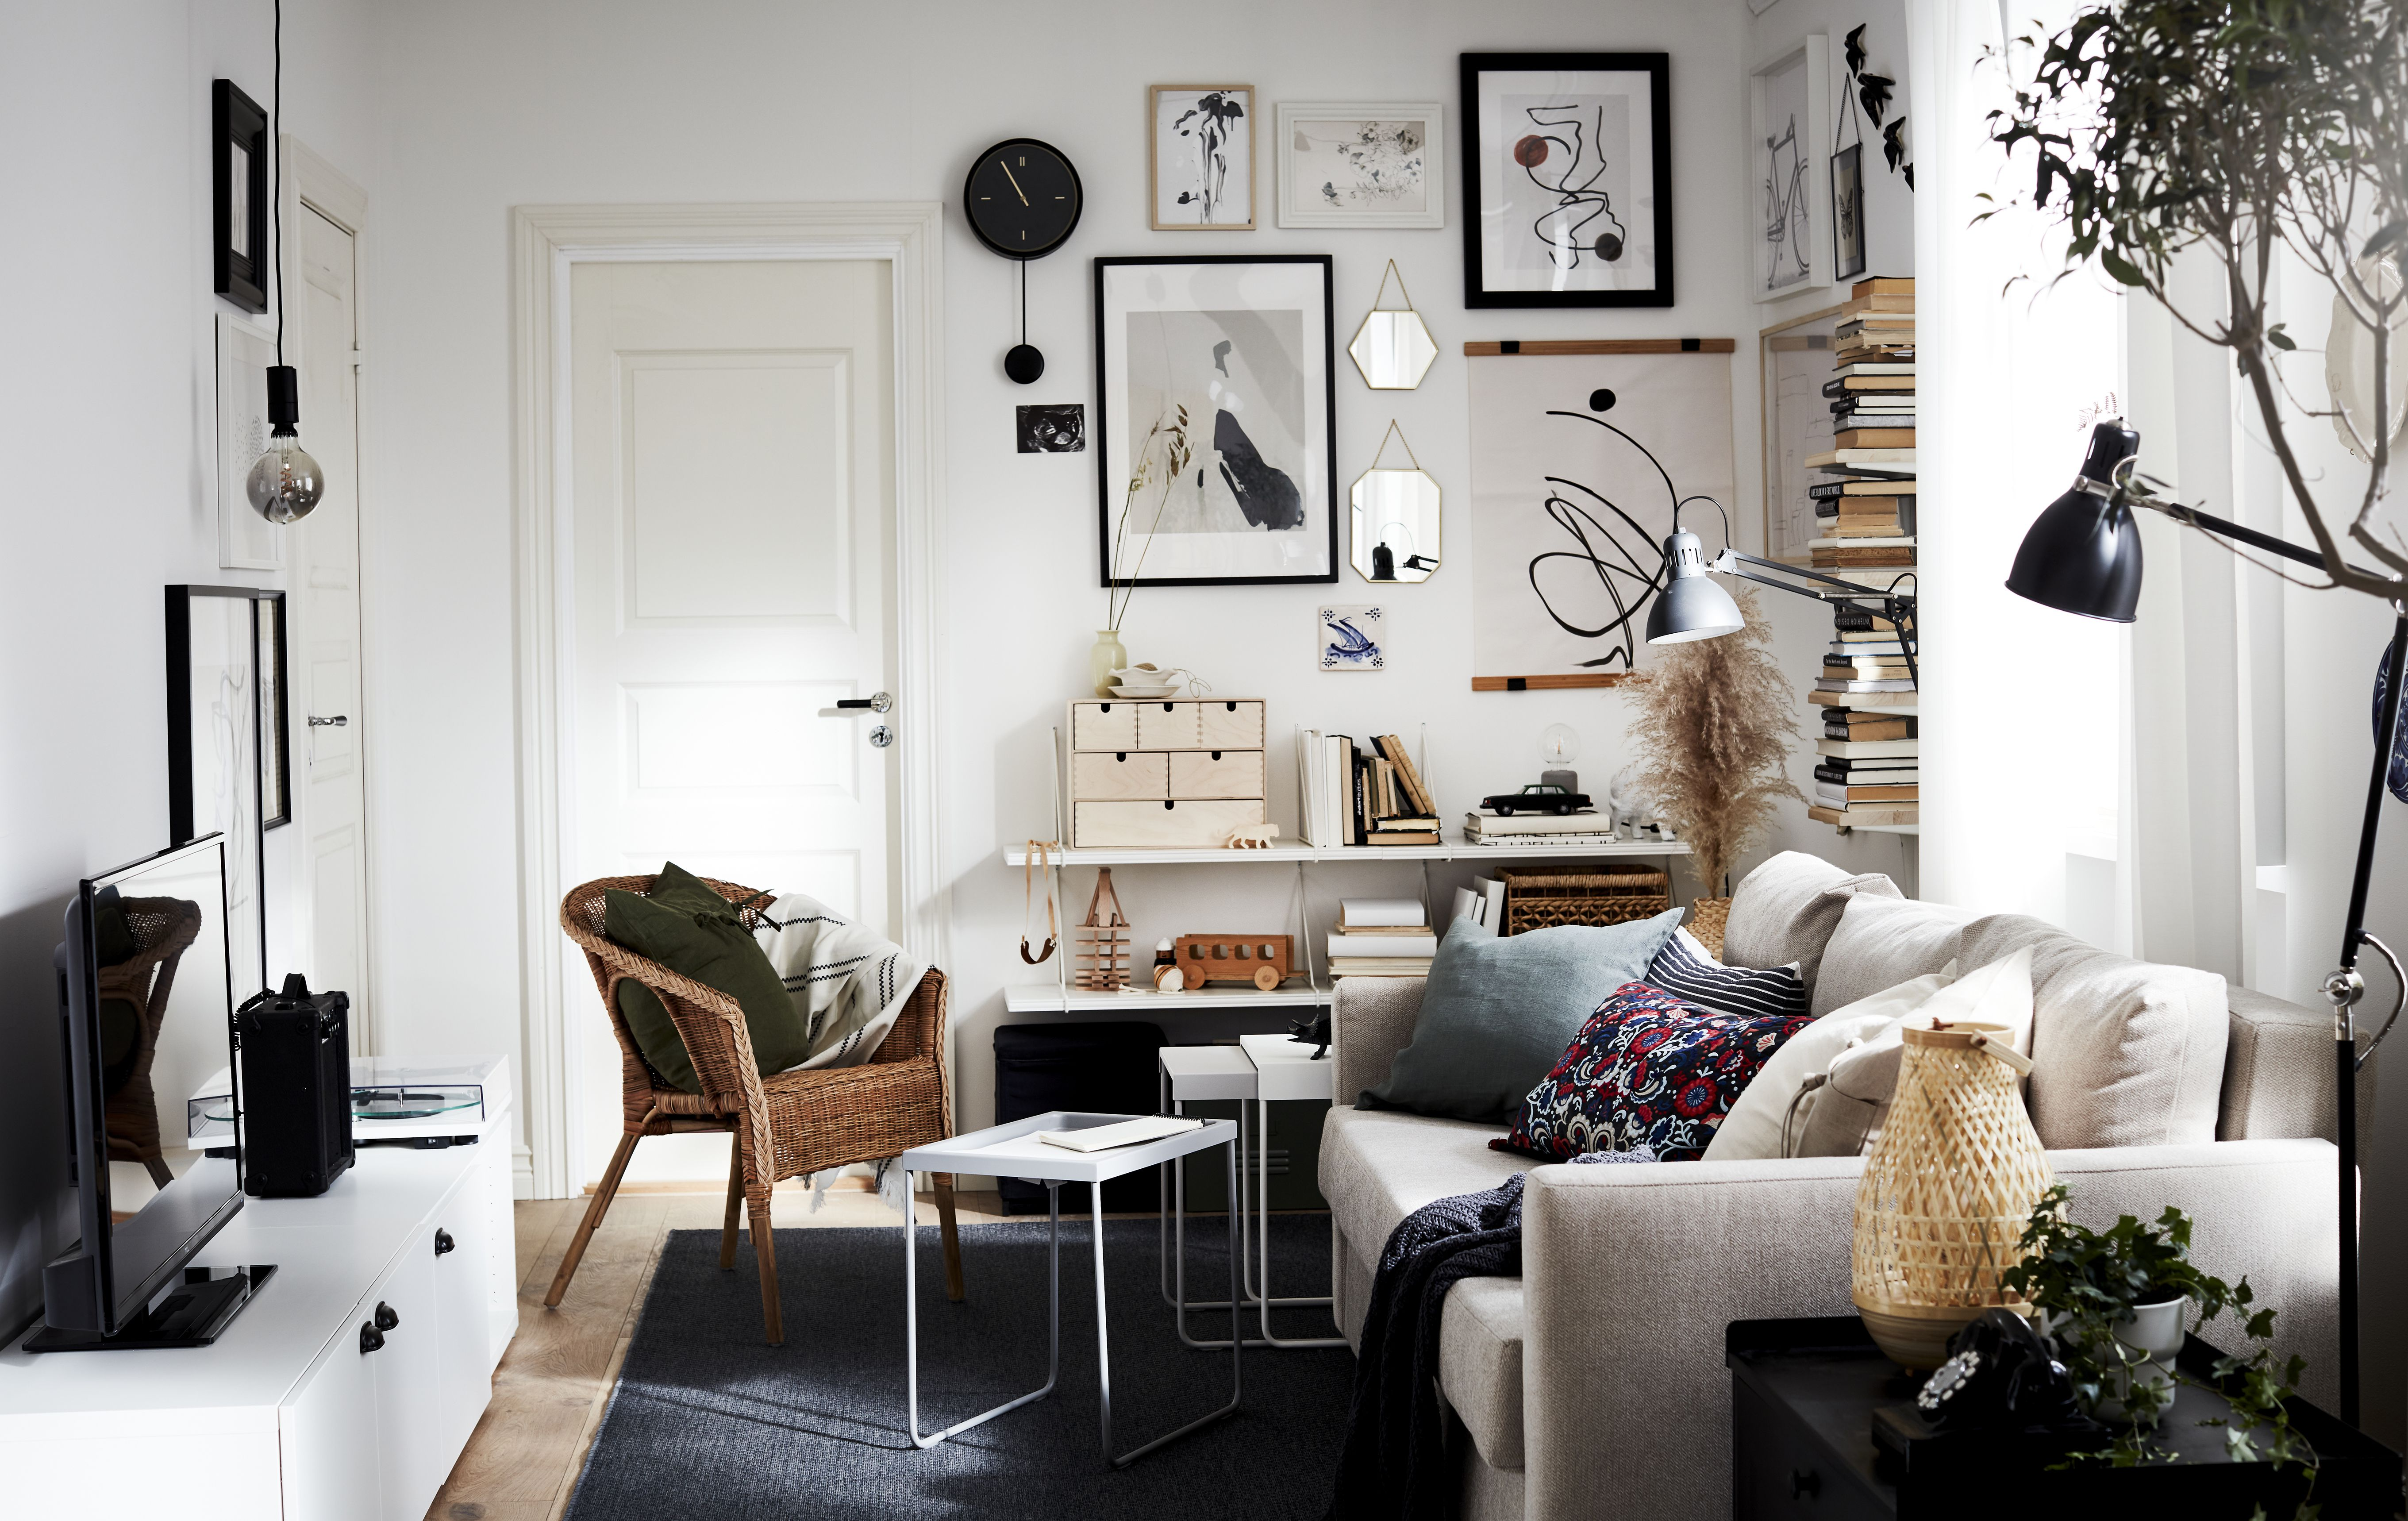 The 2021 IKEA Catalog Is Here—These Are the 7 Best Trends We Saw